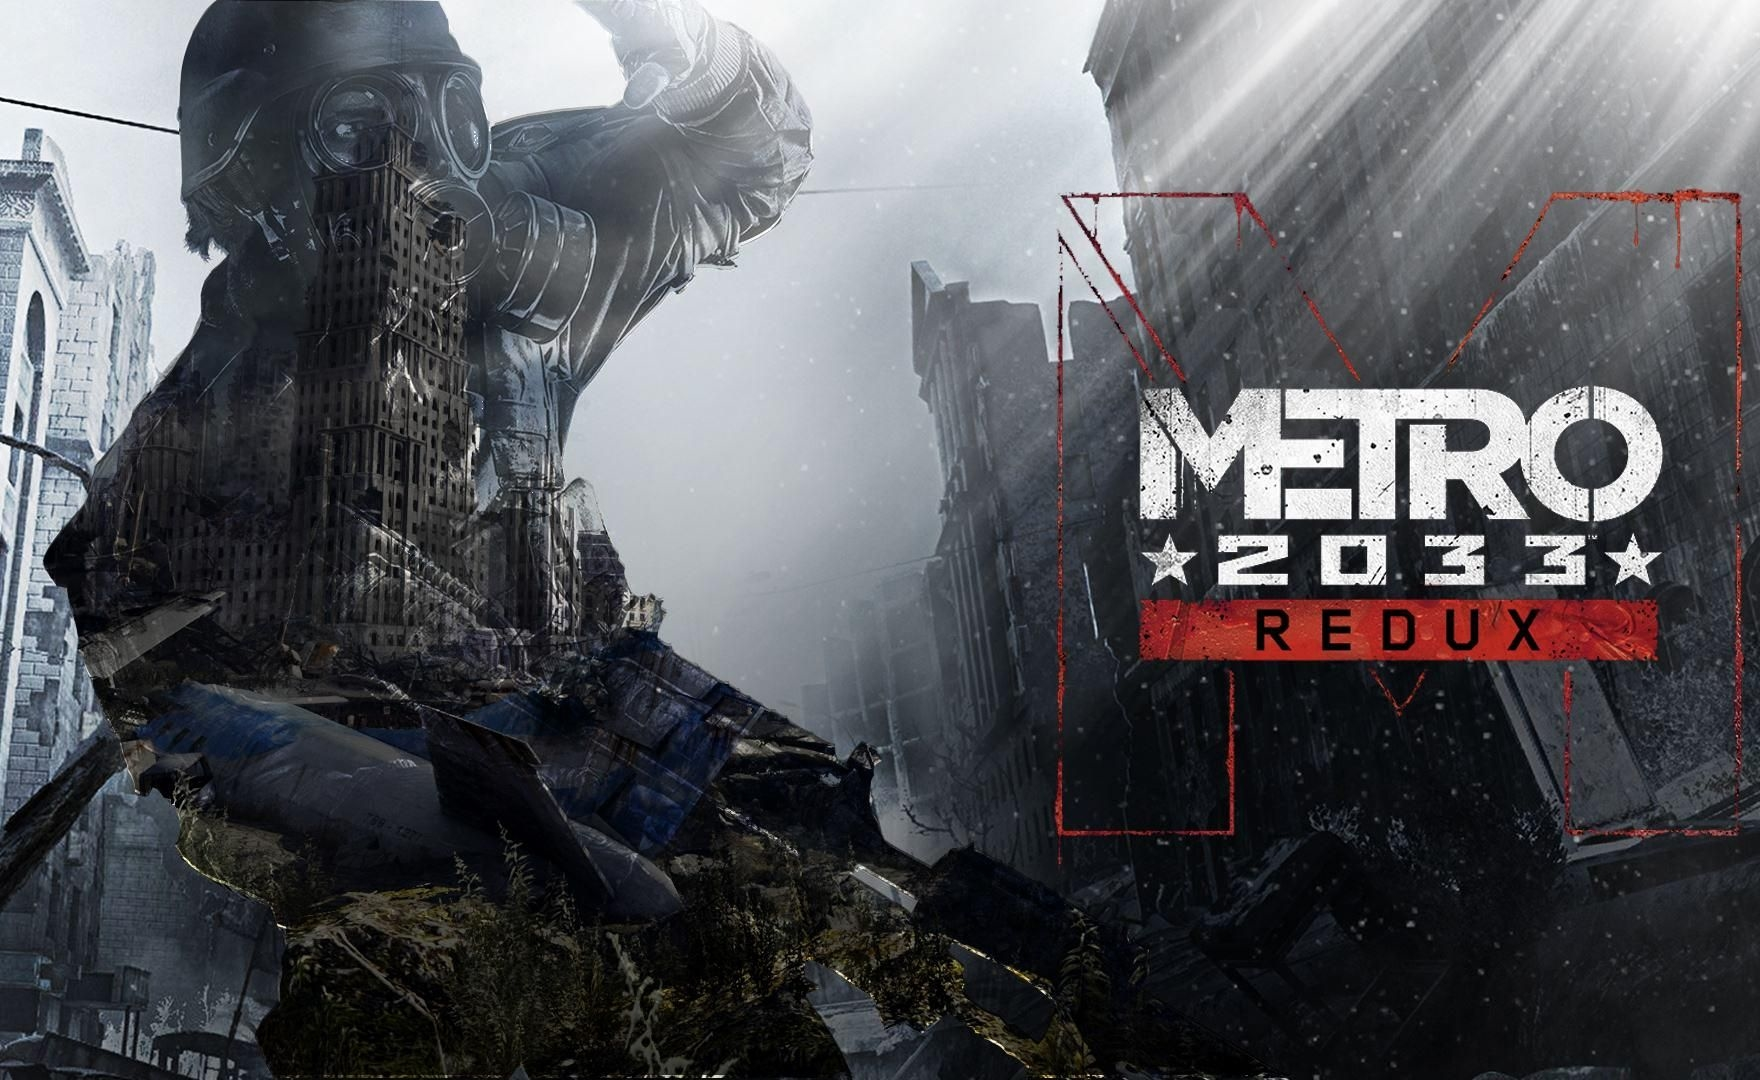 Metro 2033 Redux e Everything gratis per un periodo limitato sull'Epic Games Store